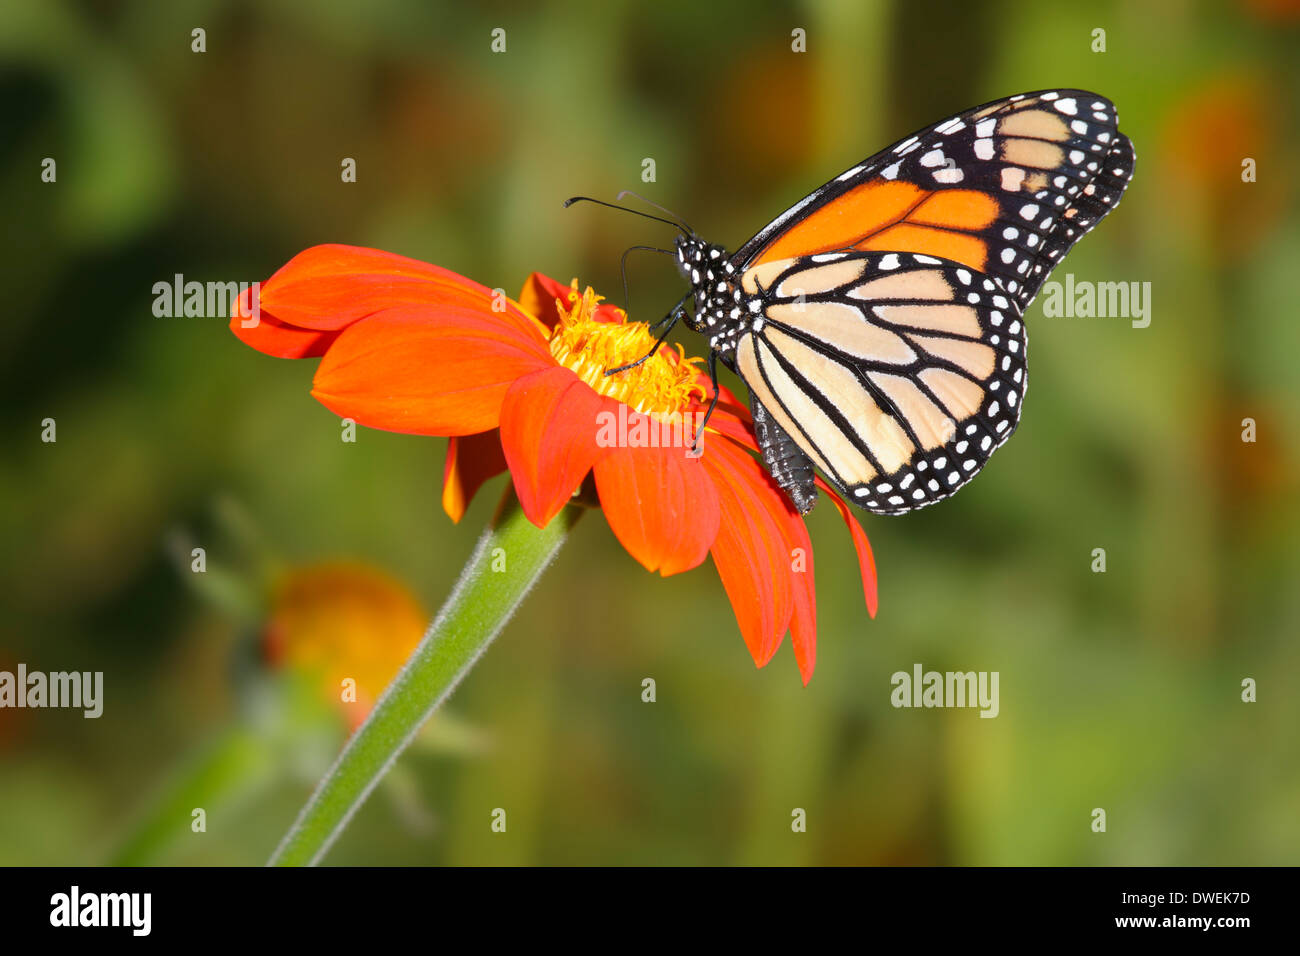 A Colorful Monarch Butterfly Nectaring On An Orange Flower With A Green Background, Danaus plexippus; Southwestern - Stock Image